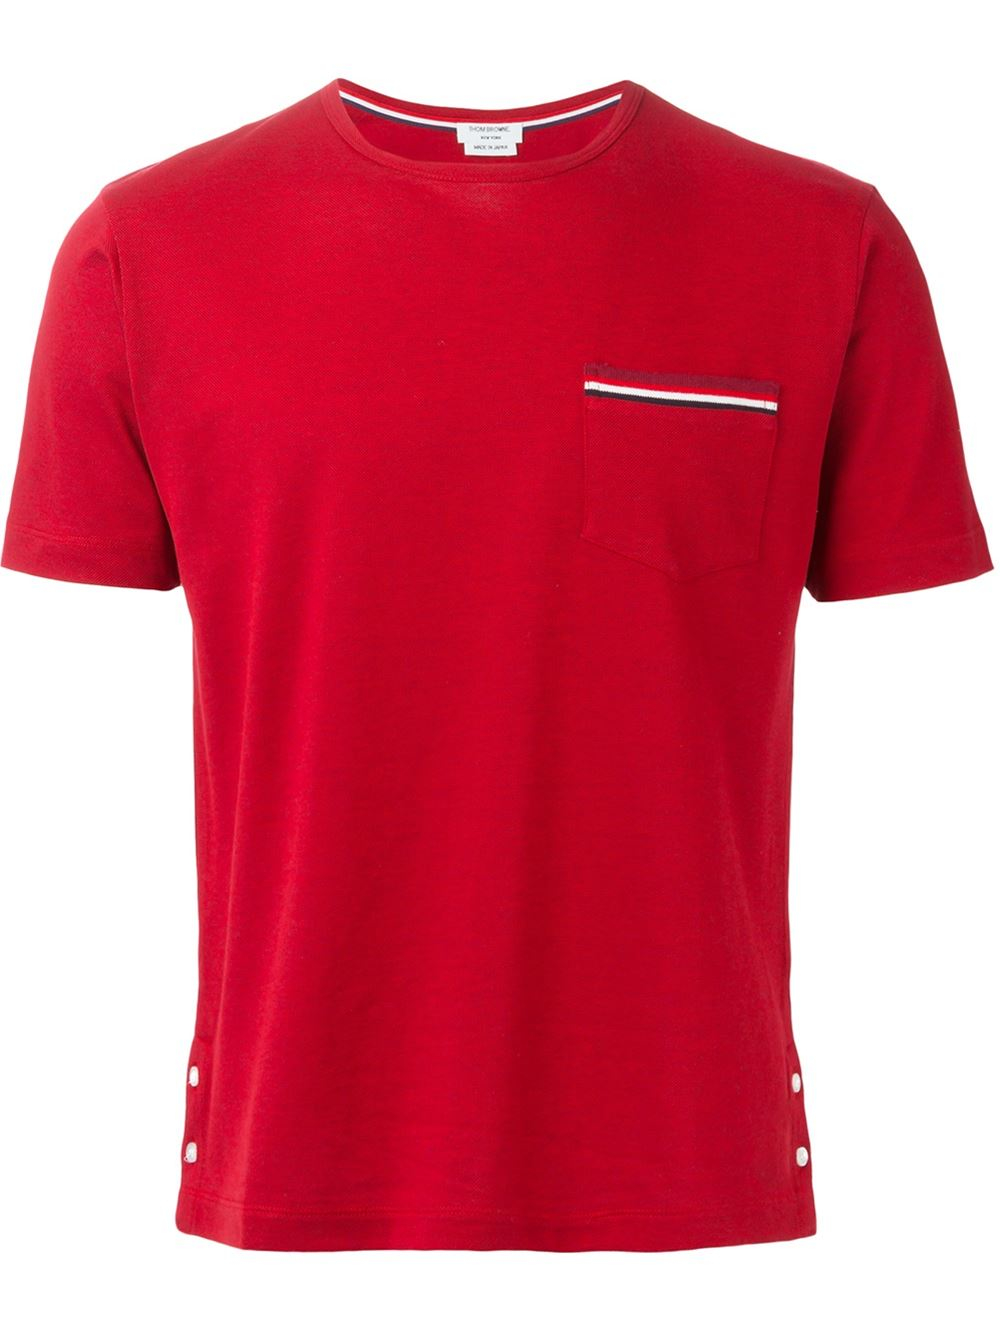 Thom browne patch pocket piquet t shirt in red for men lyst for Thom browne t shirt